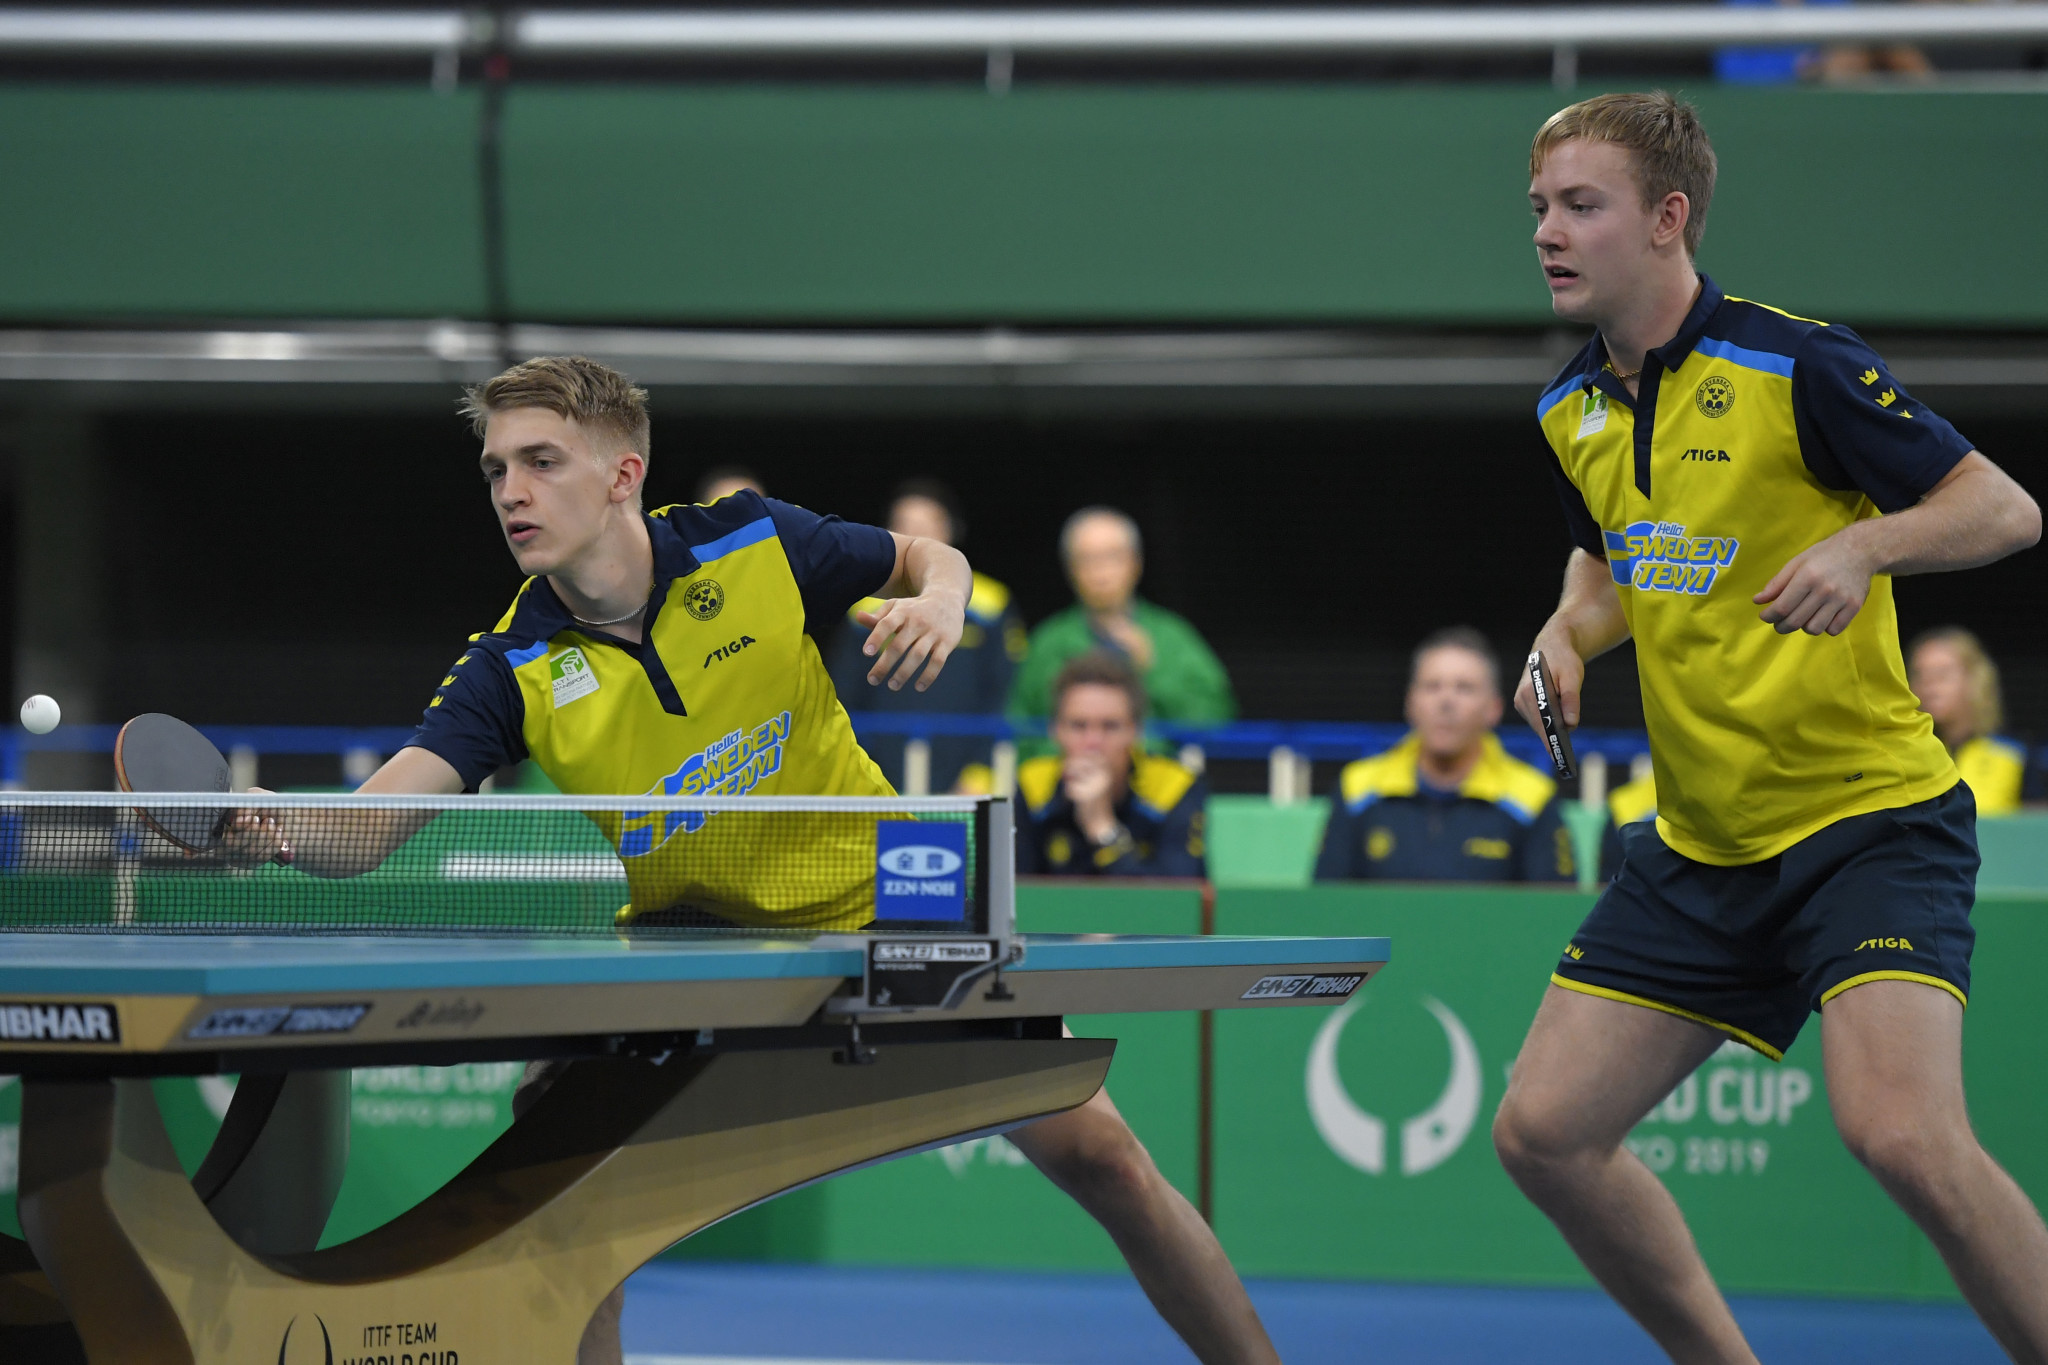 ITTF cancels Swedish International Open due to COVID-19 restrictions